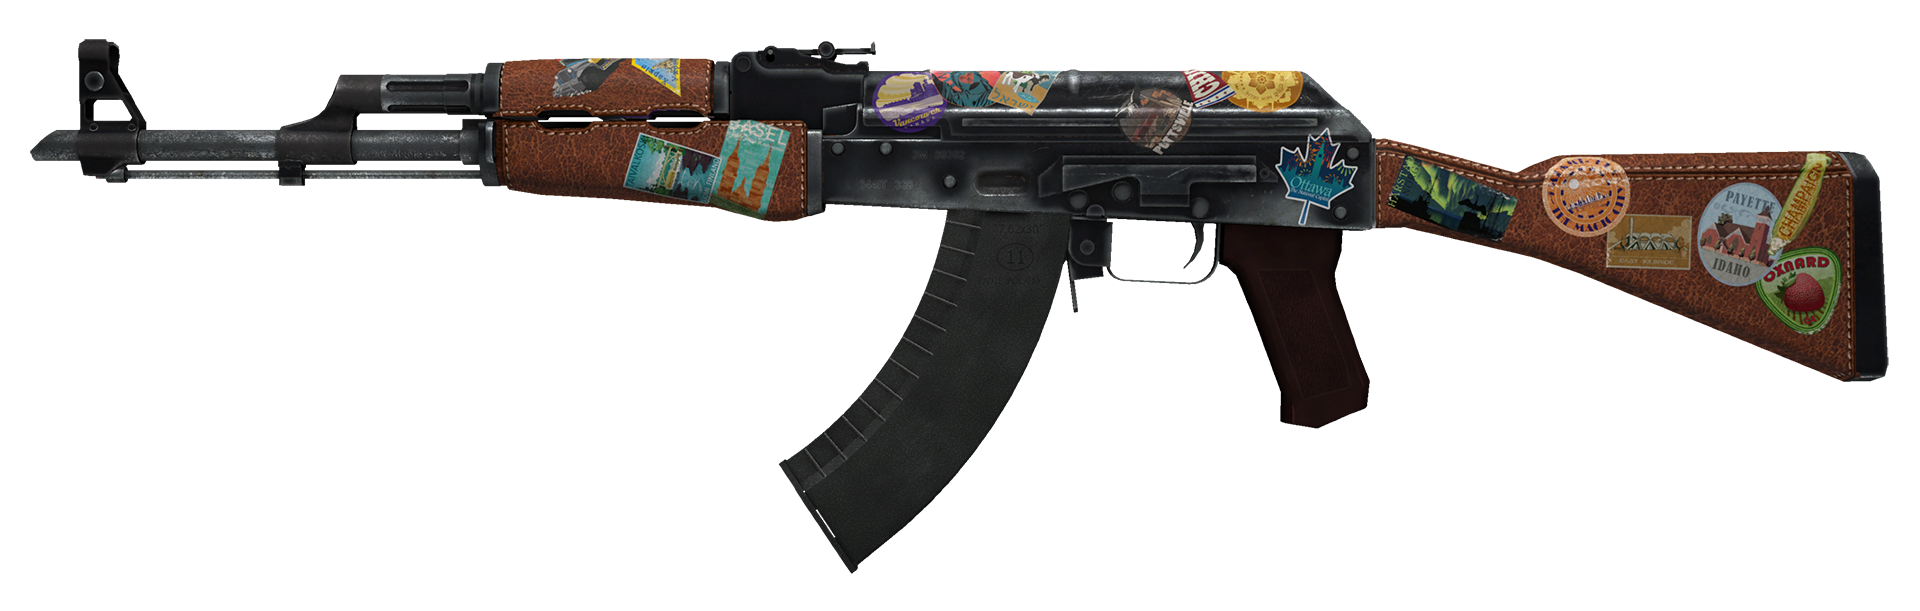 AK-47 Jet Set Large Rendering